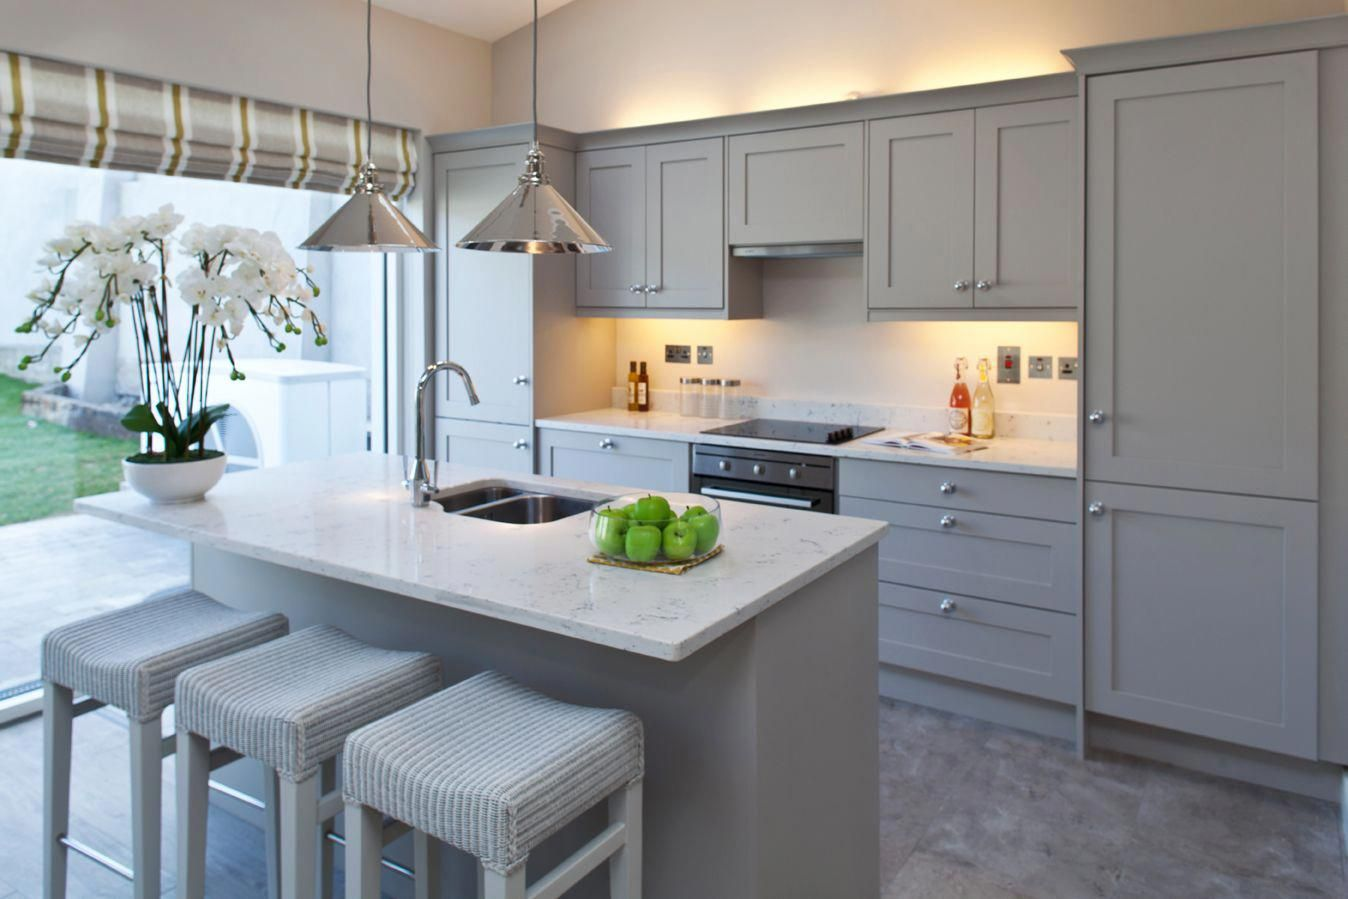 Image result for kitchen with gray cabinets kitchen home decor in